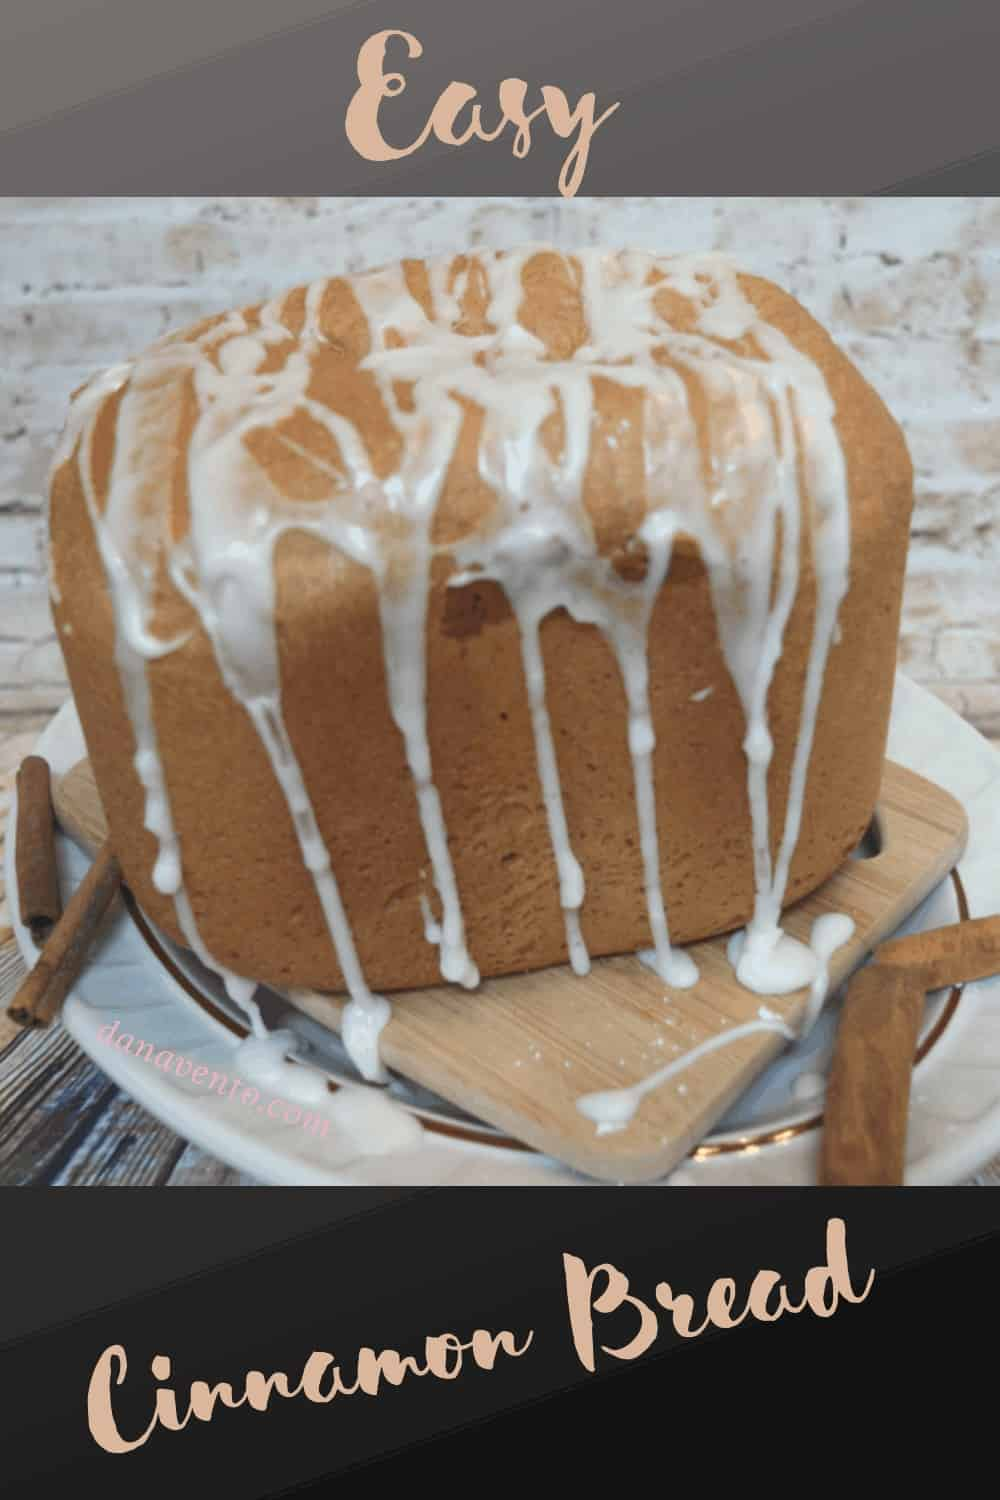 Cinnamon Bread on Cutting Board with Icing Dripping